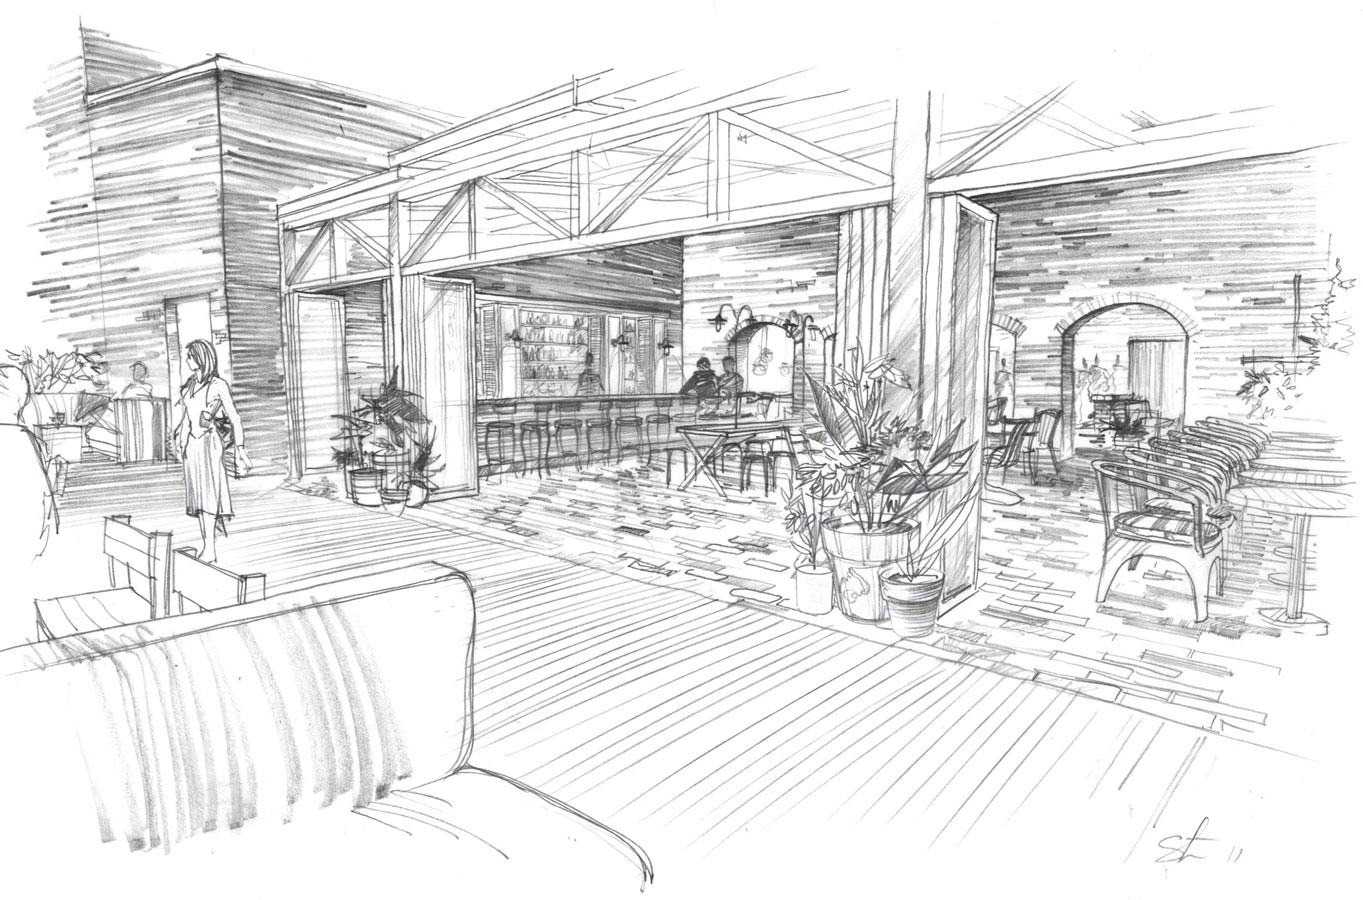 Architectural freehand pencil rendering architectural graphics concept sketch architecture presentation illustration free hand hotel roof restaurant New York visualization artist Shalum Shalumov Шалум Шалумов архитектор художник